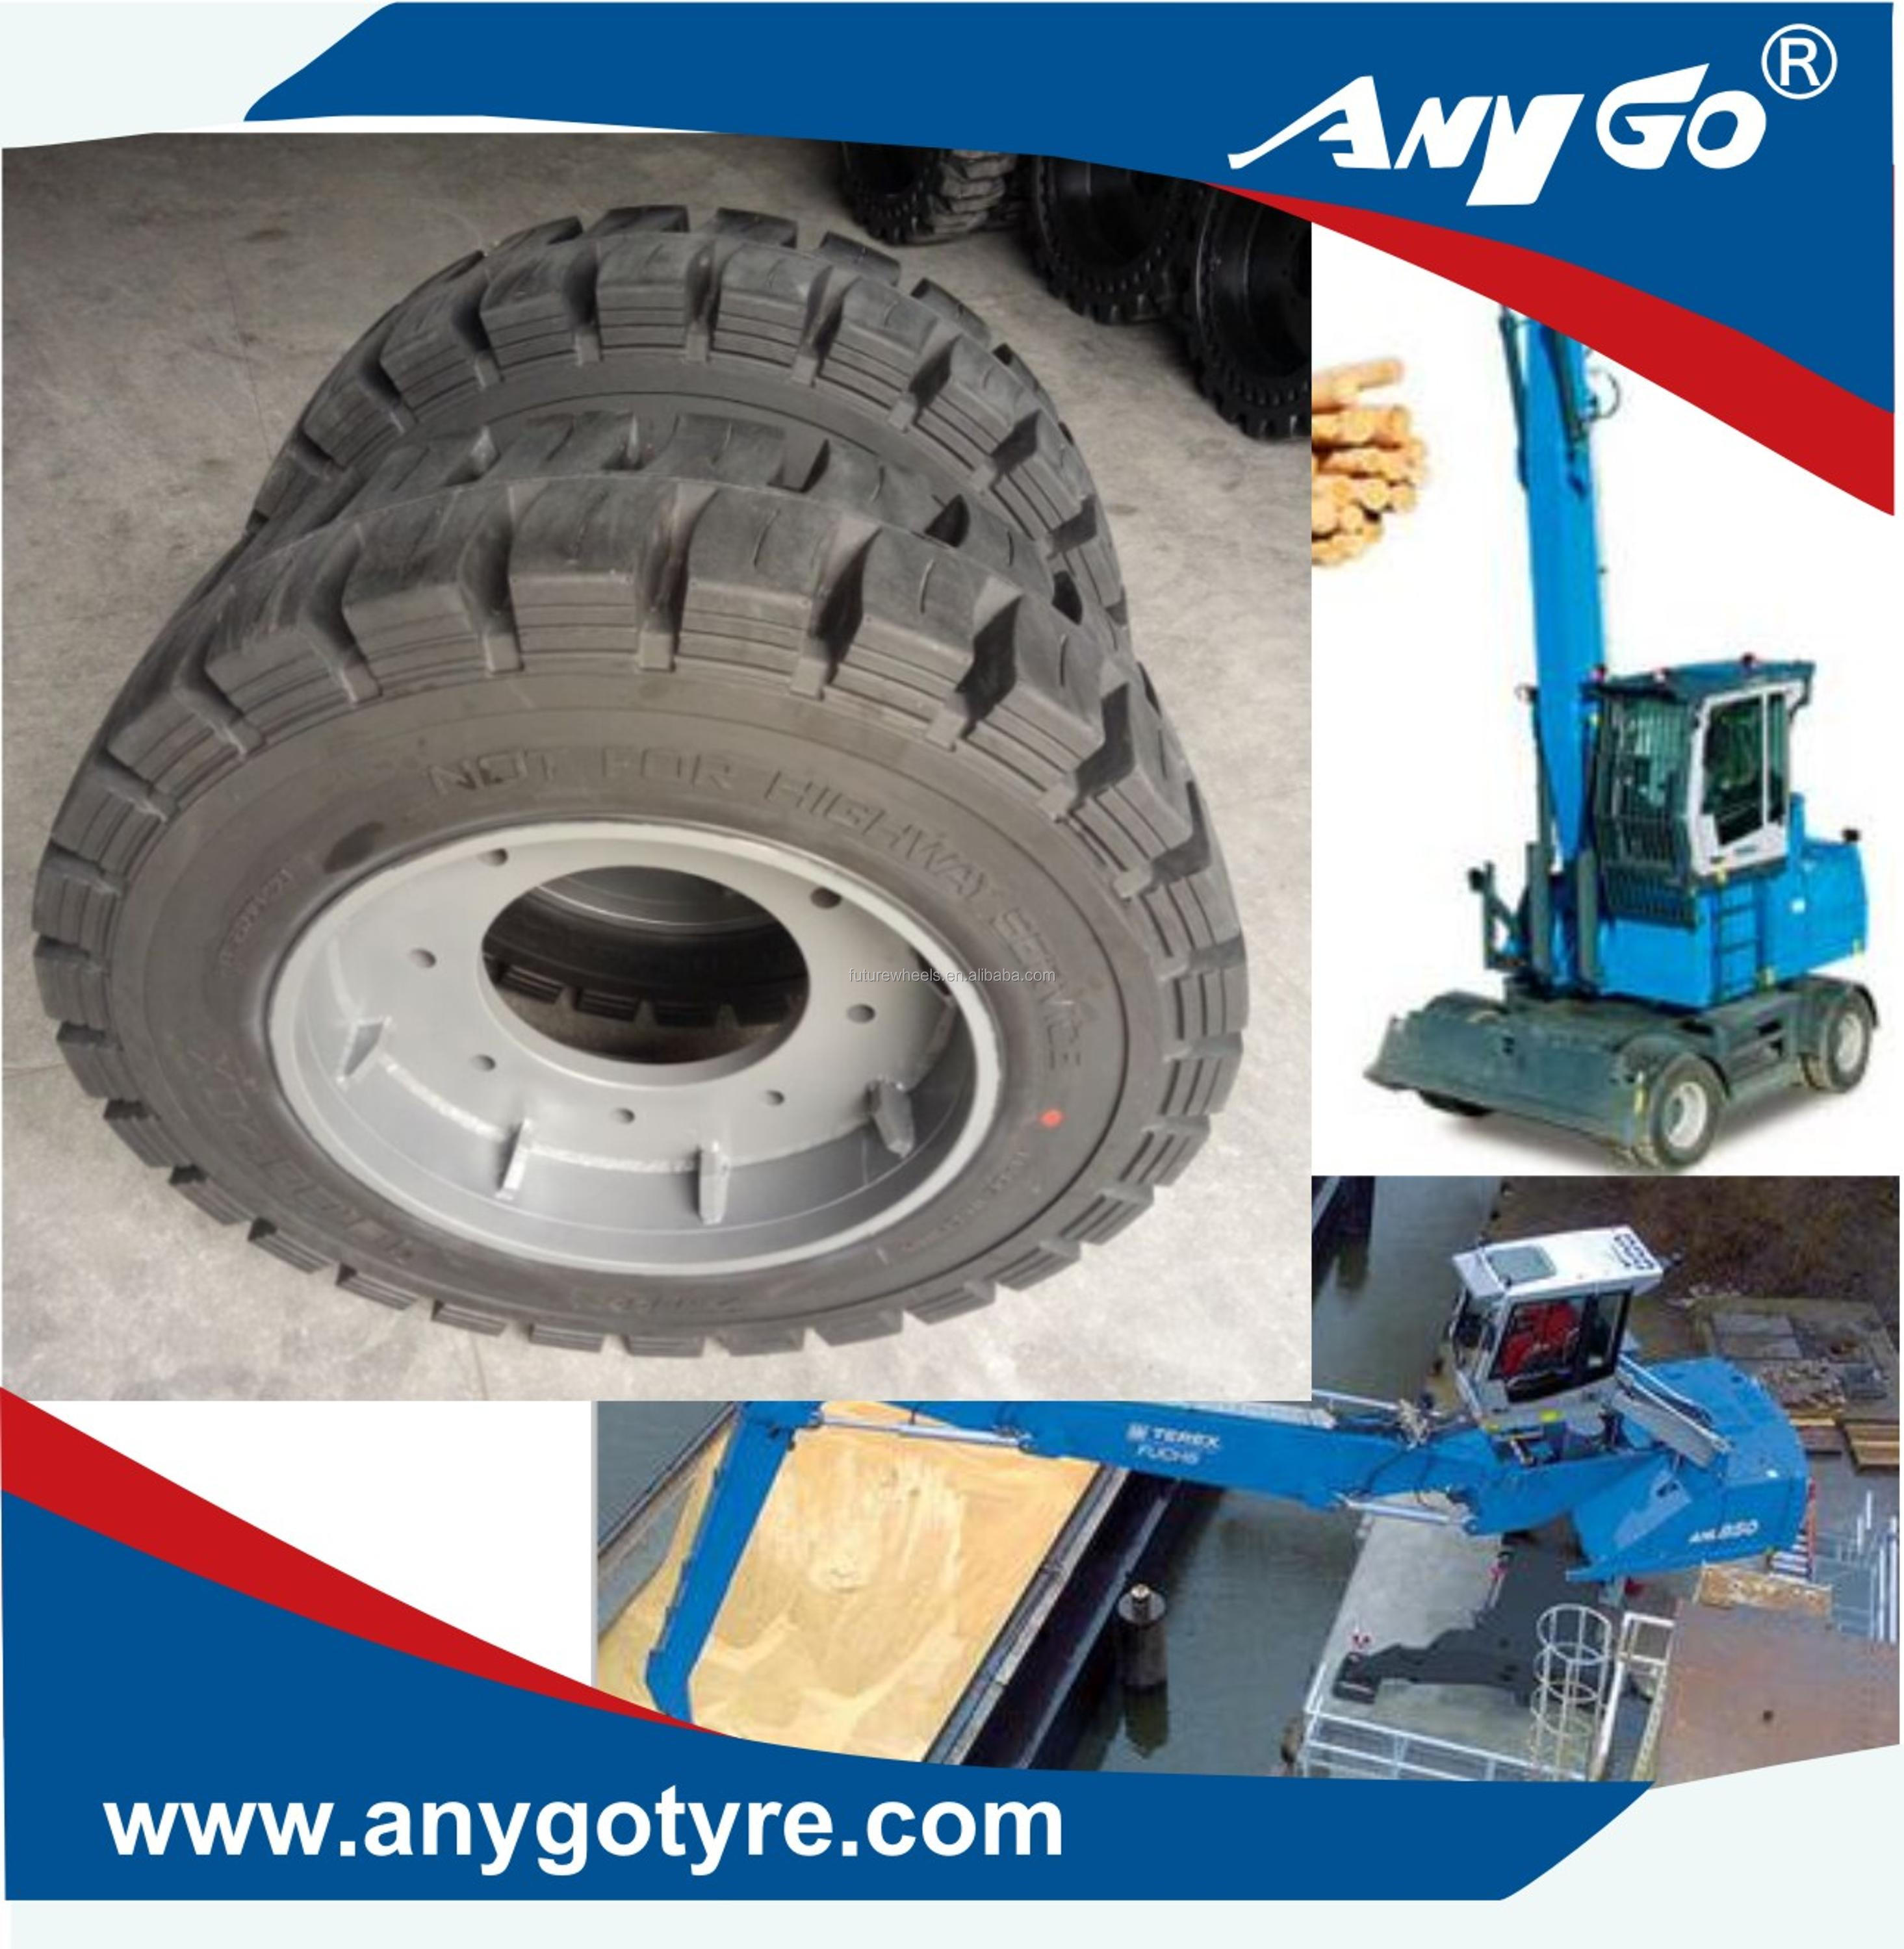 Terex Fuchs Mhl 340/350/360 Spare Part  8 50-20,9 00-20,10 00-20,11 00-20,12 00-20 Solid Tire For Waste/scrap/port  Handling - Buy Anygo Brand 8 50-20